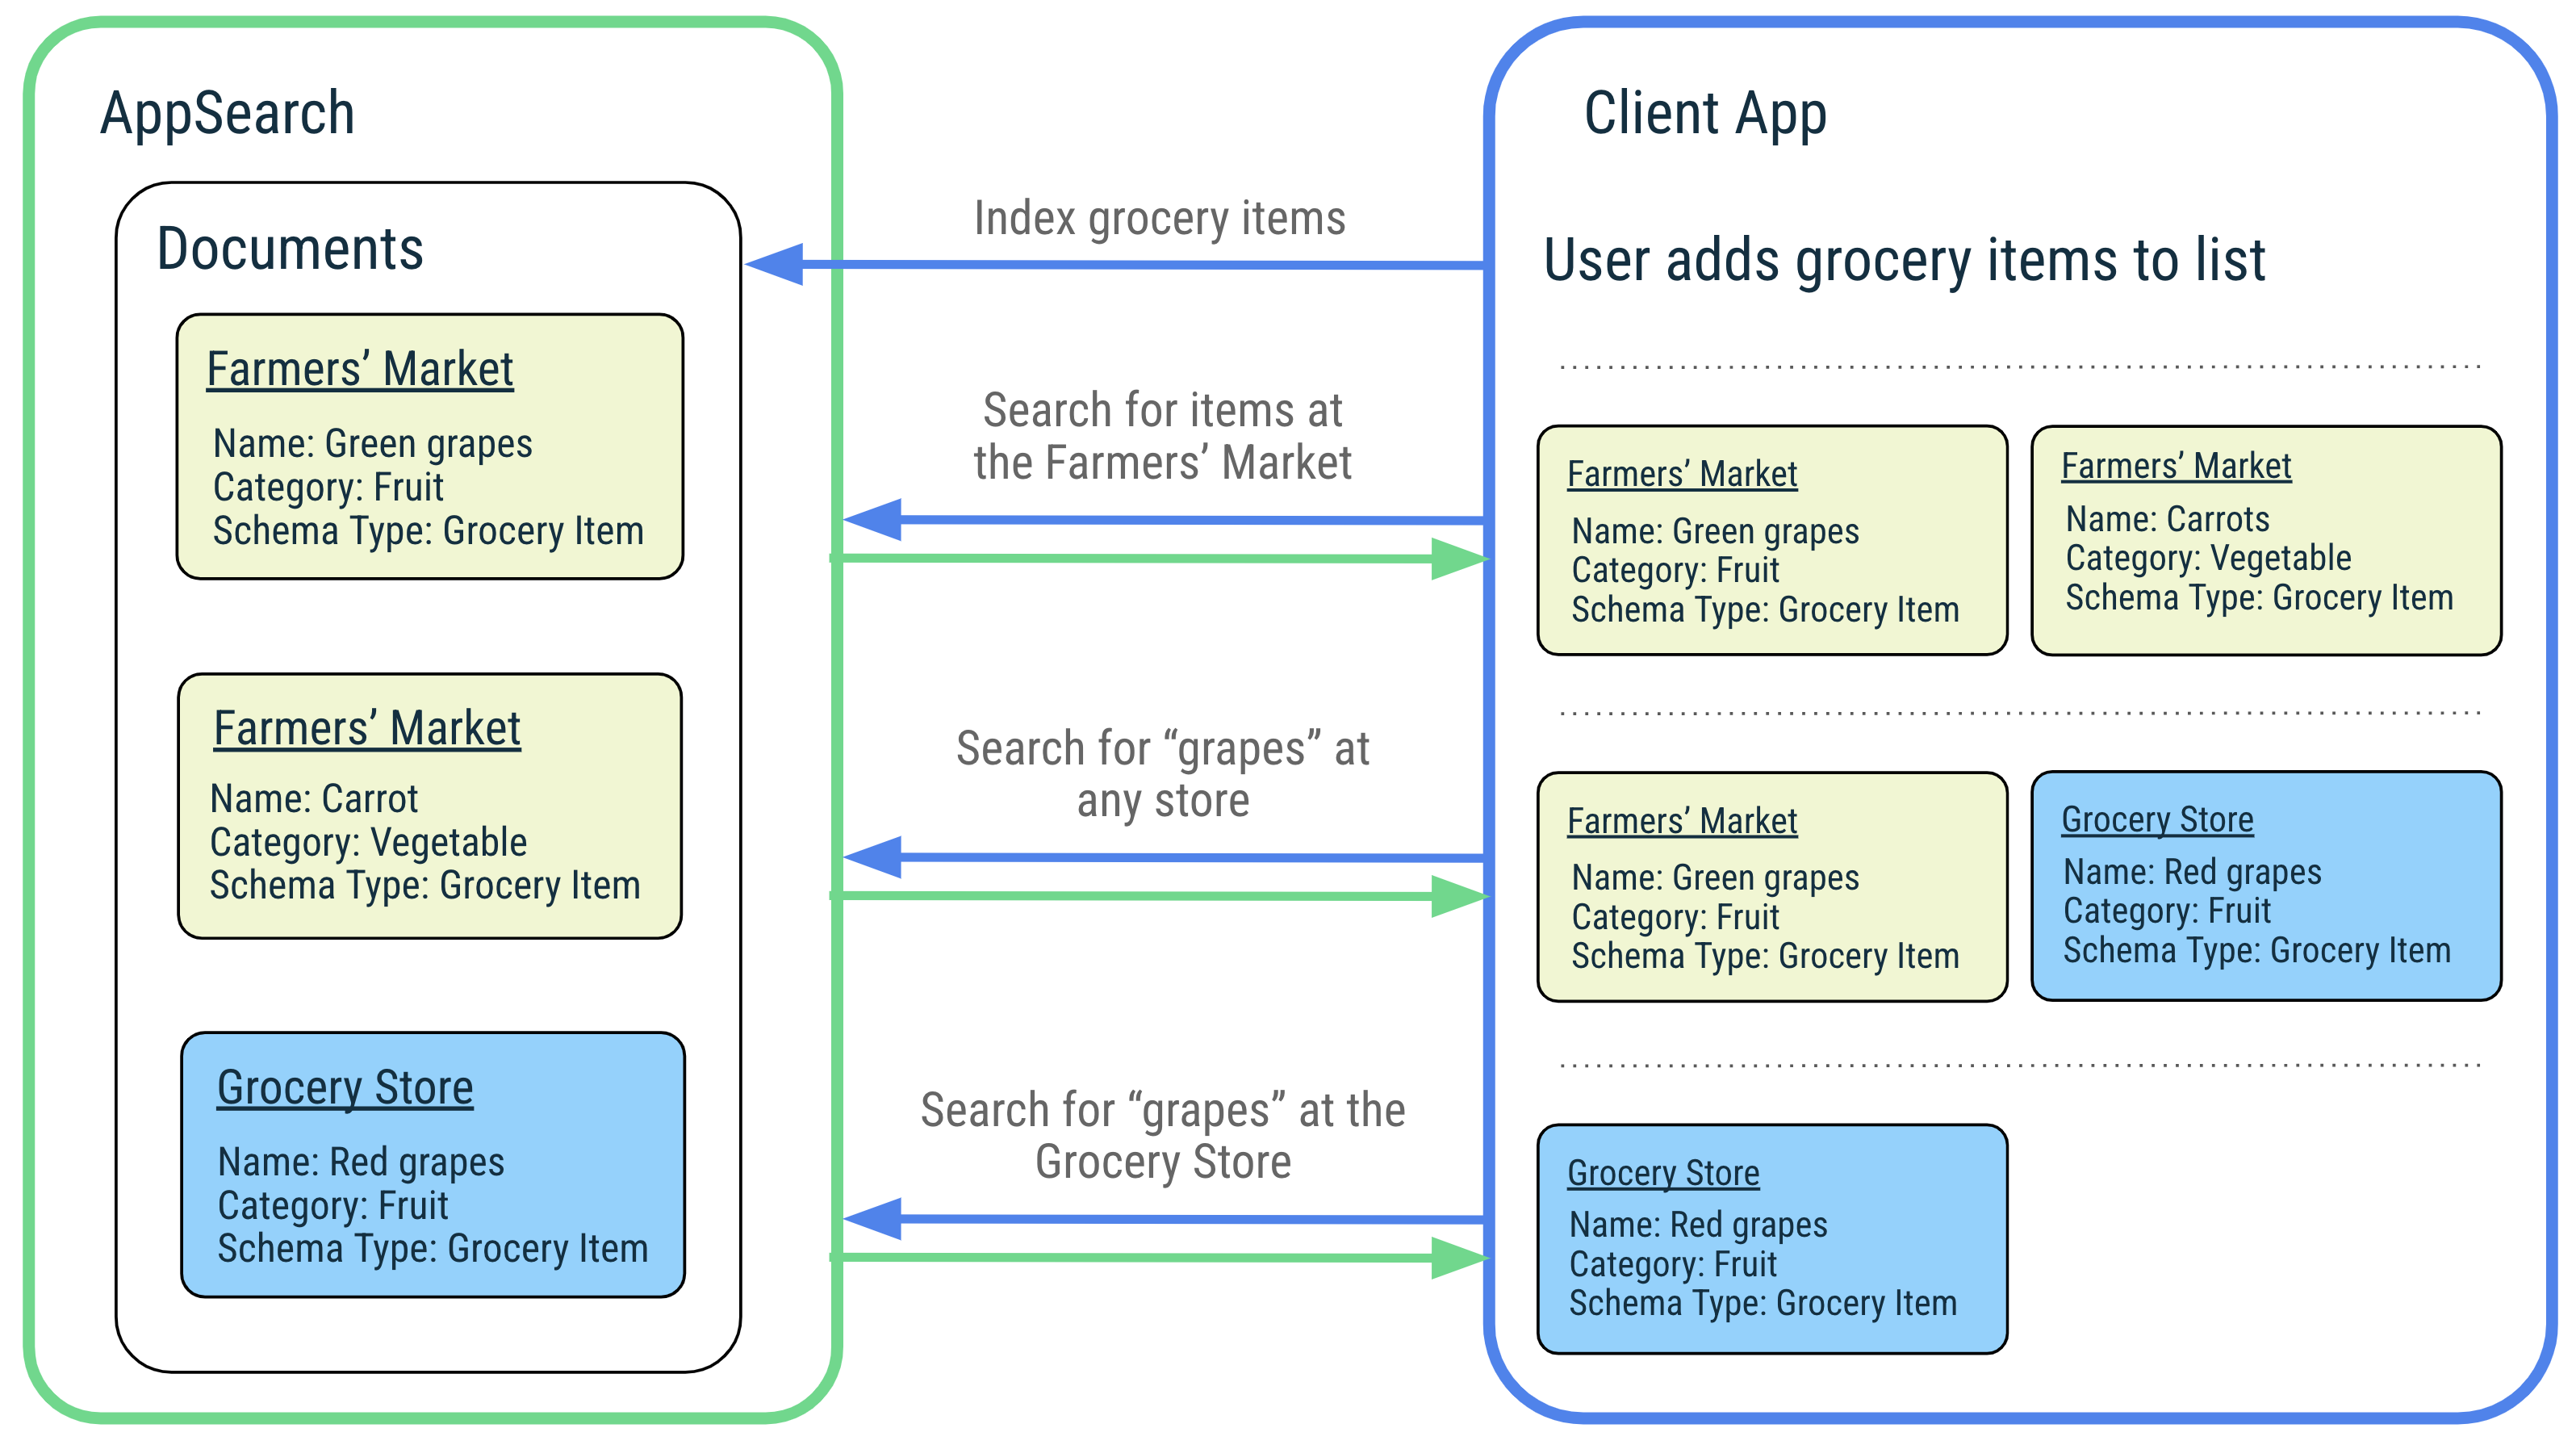 Diagram illustrating indexing and searching within AppSearch